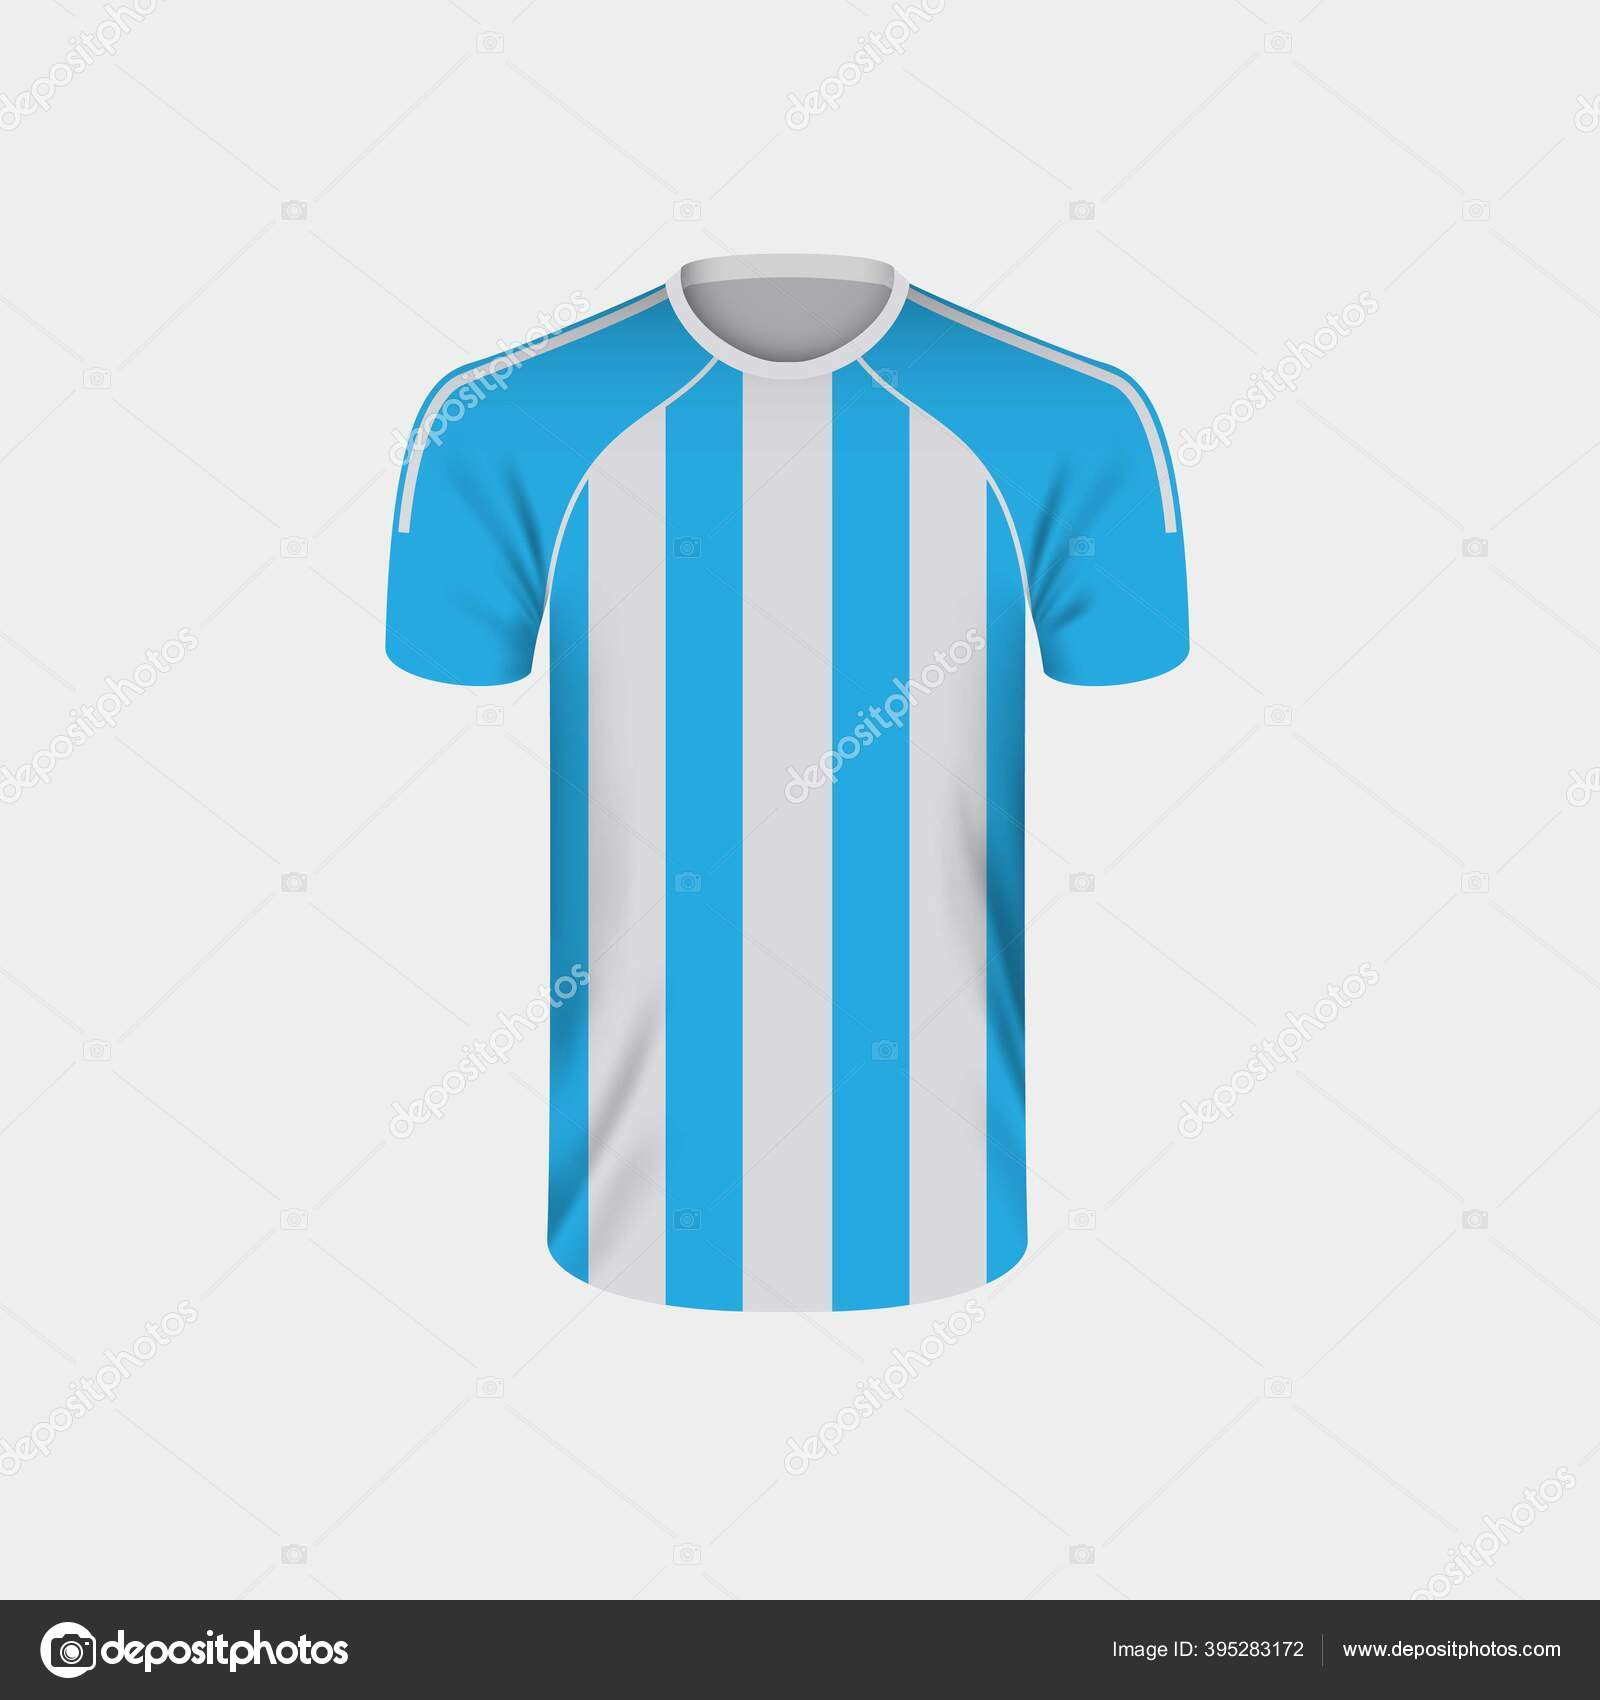 Sports jersey vector icon vector illustration for website and graphic design 395283172